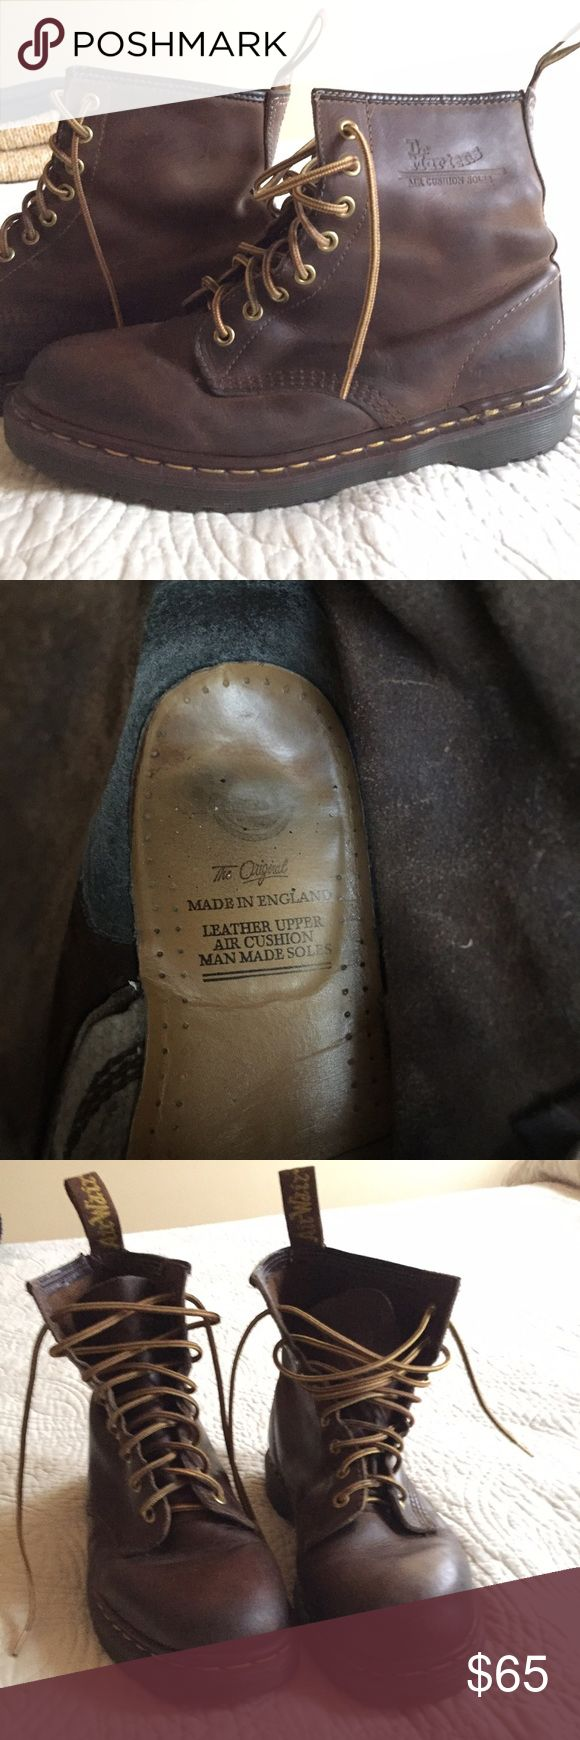 Brown 8 Eyelet Dr. Martens boots These were worn on and off for a couple of months then sat in my closet for a year when I switched to Red Wings. They are broken in....but in Great condition! Nice patina showing in the leather...no cracking. Tons of life left both in the soles and the leather. I included the picture of the inside of the boot to show how little of the writing on the insole has worn off (showing how little they've been worn). Great boots....I just don't wear them so I want to…